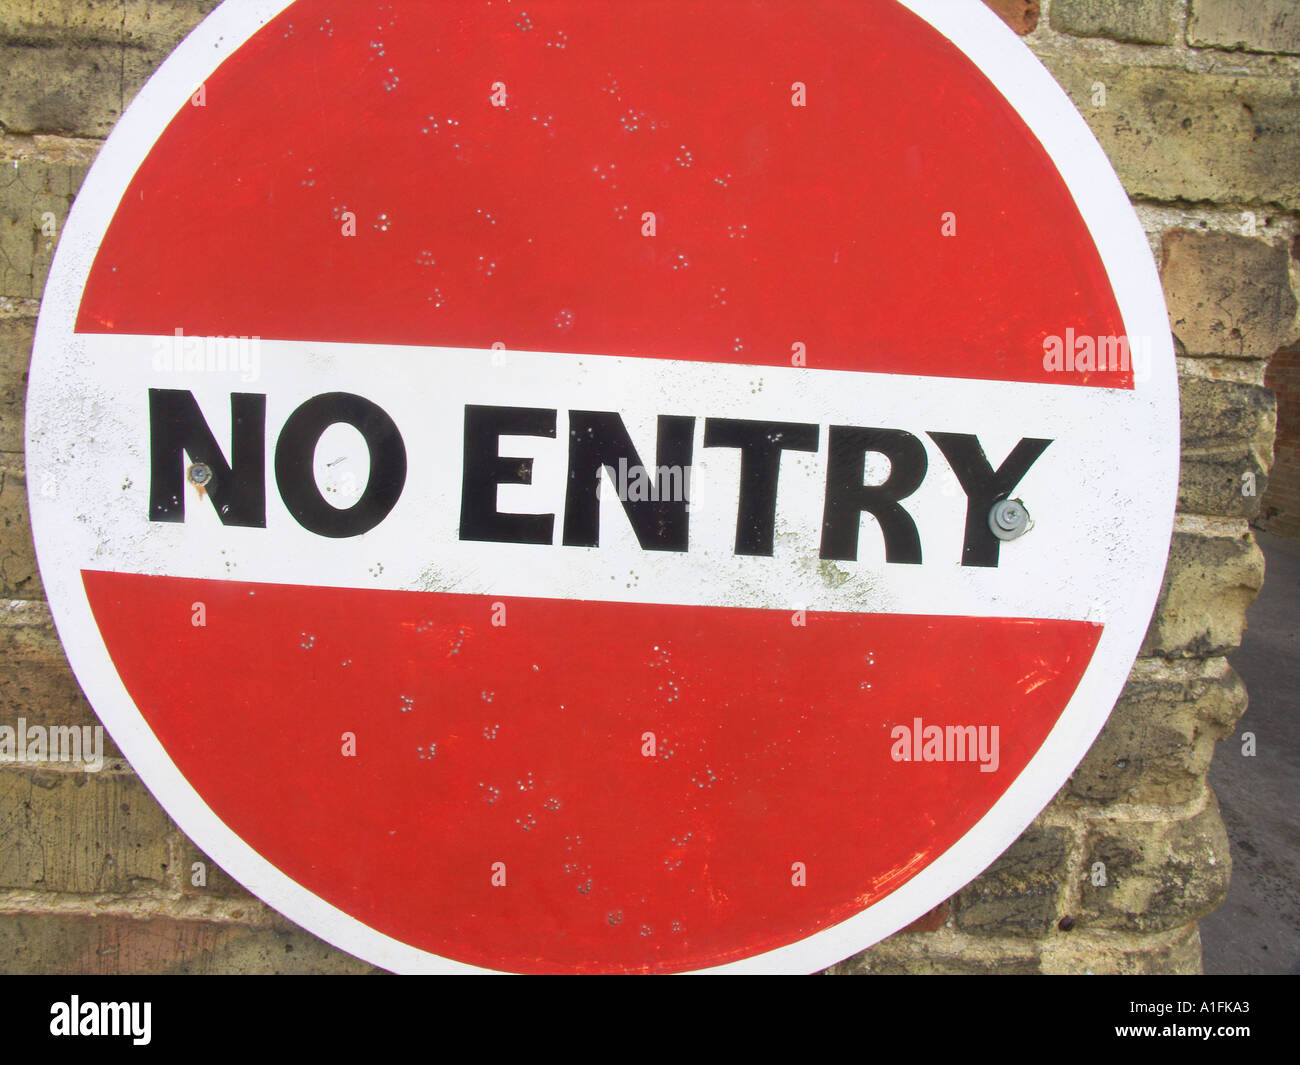 No entry sign red background highway code roadsign - Stock Image